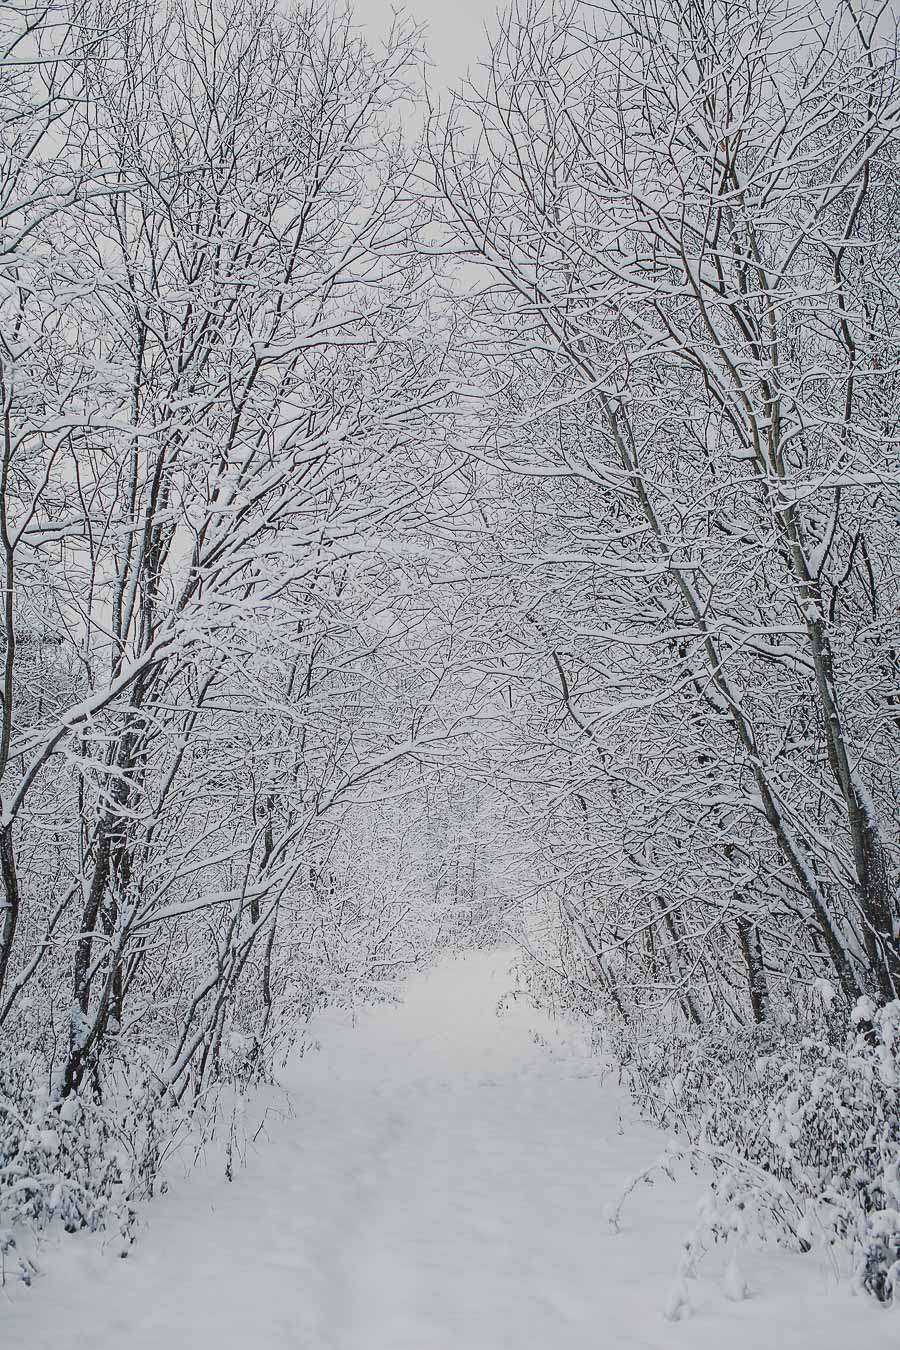 White covered trees